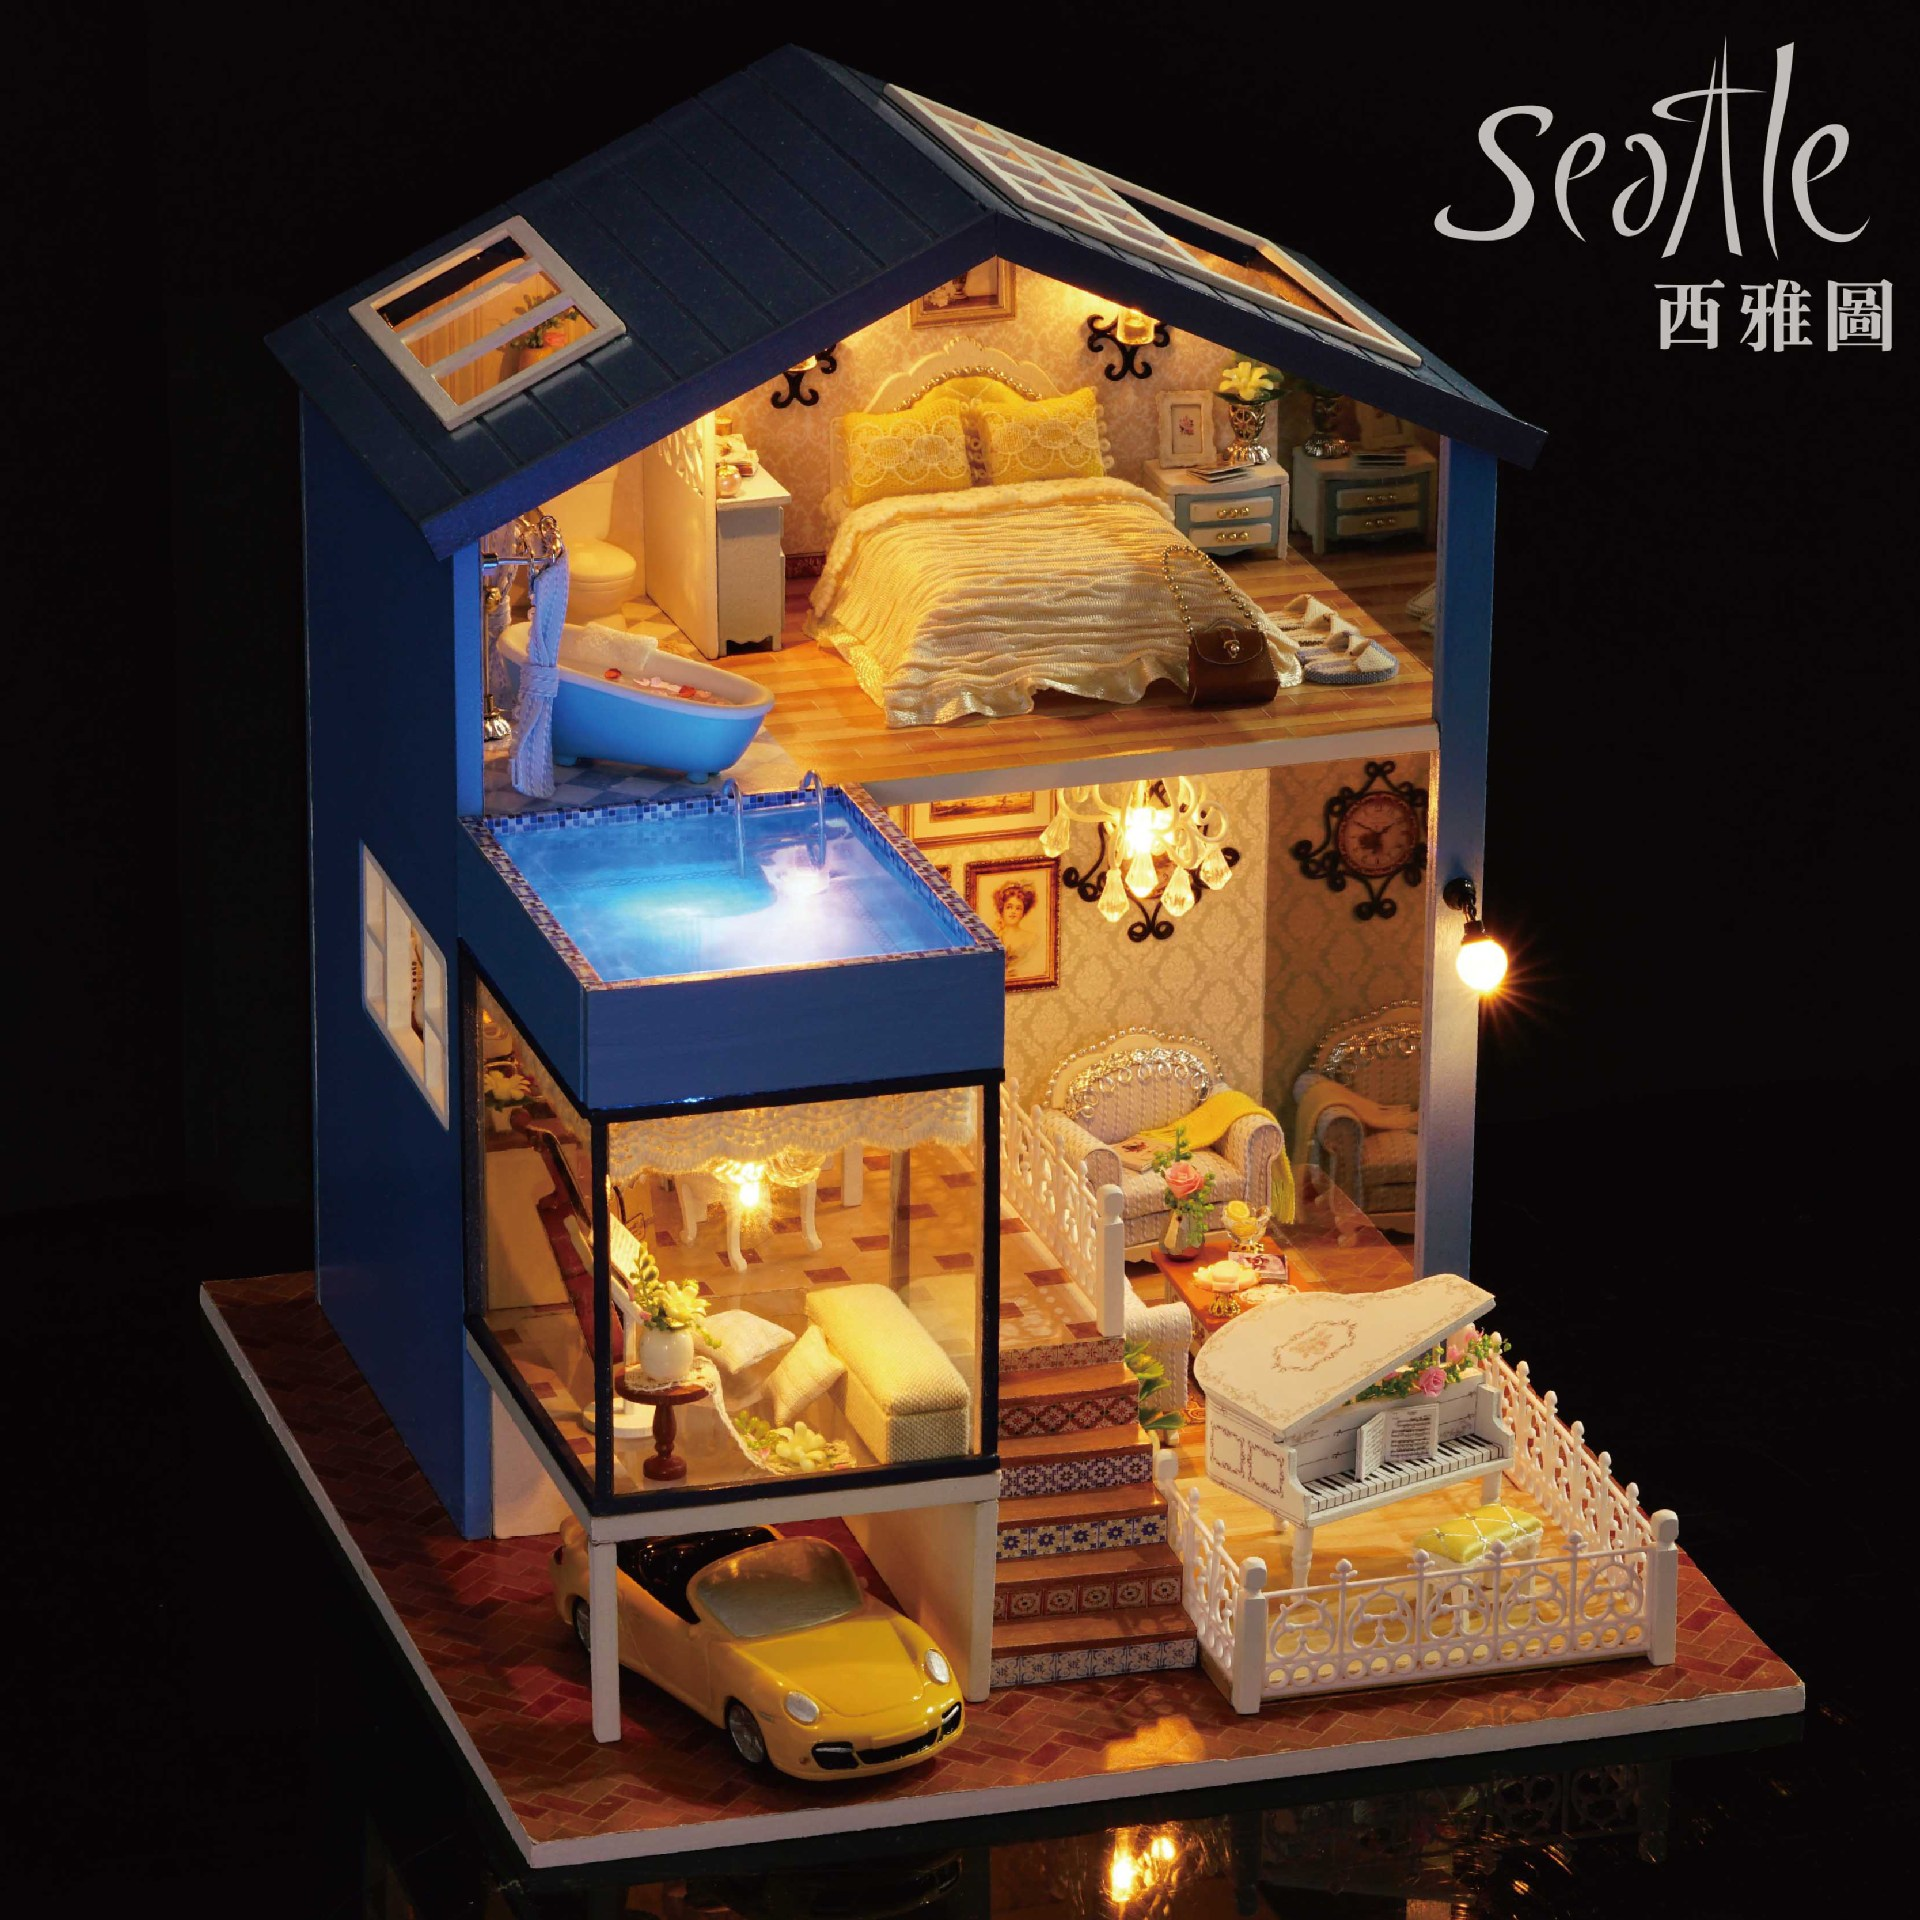 DIY Hut Seattle Architecture Model For Making Small House Assembled Handmade Toy Birthday Gift Women's